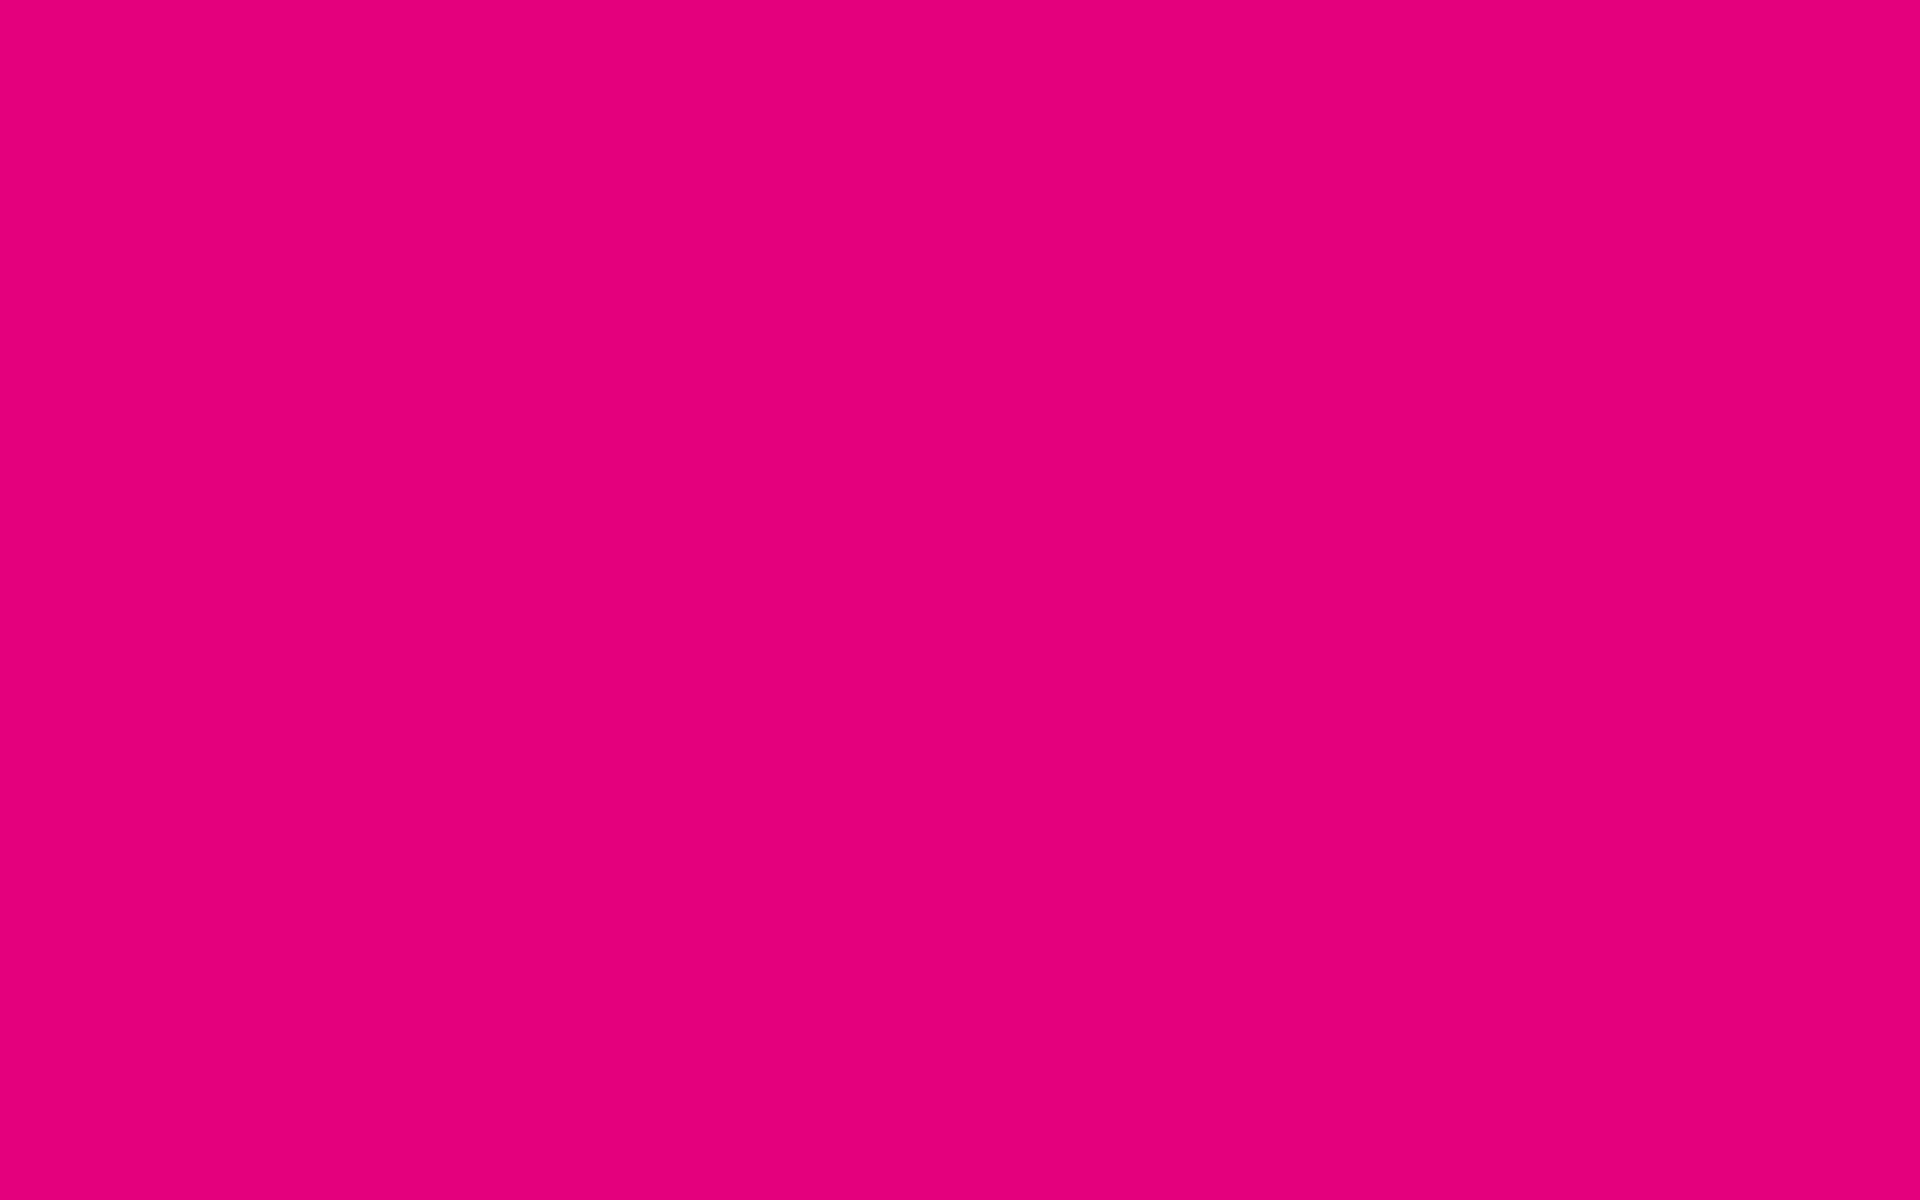 1920x1200 Mexican Pink Solid Color Background